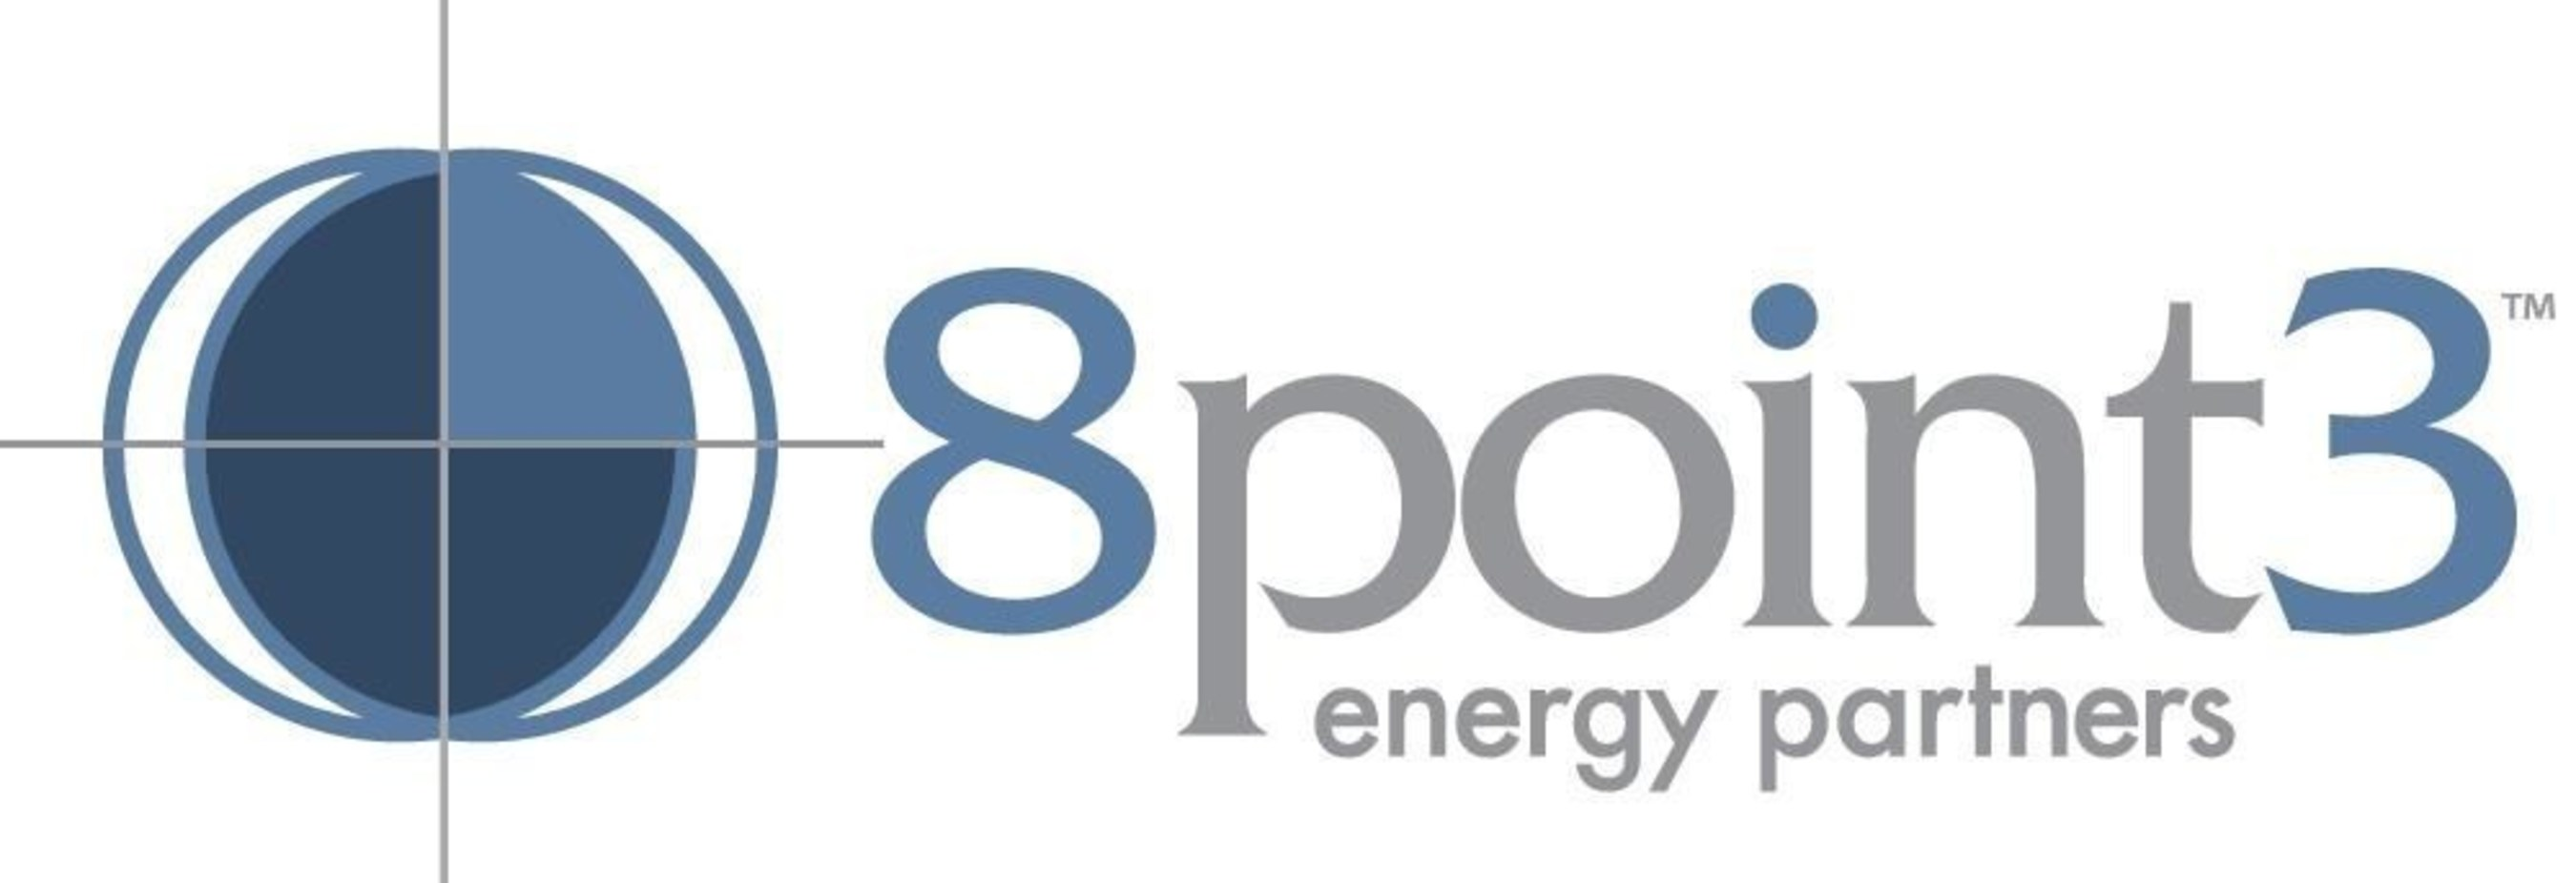 8point3 Energy Partners LP, a YieldCo Formed by First Solar, Inc. and SunPower Corporation, Announces Pricing of its Initial Public Offering